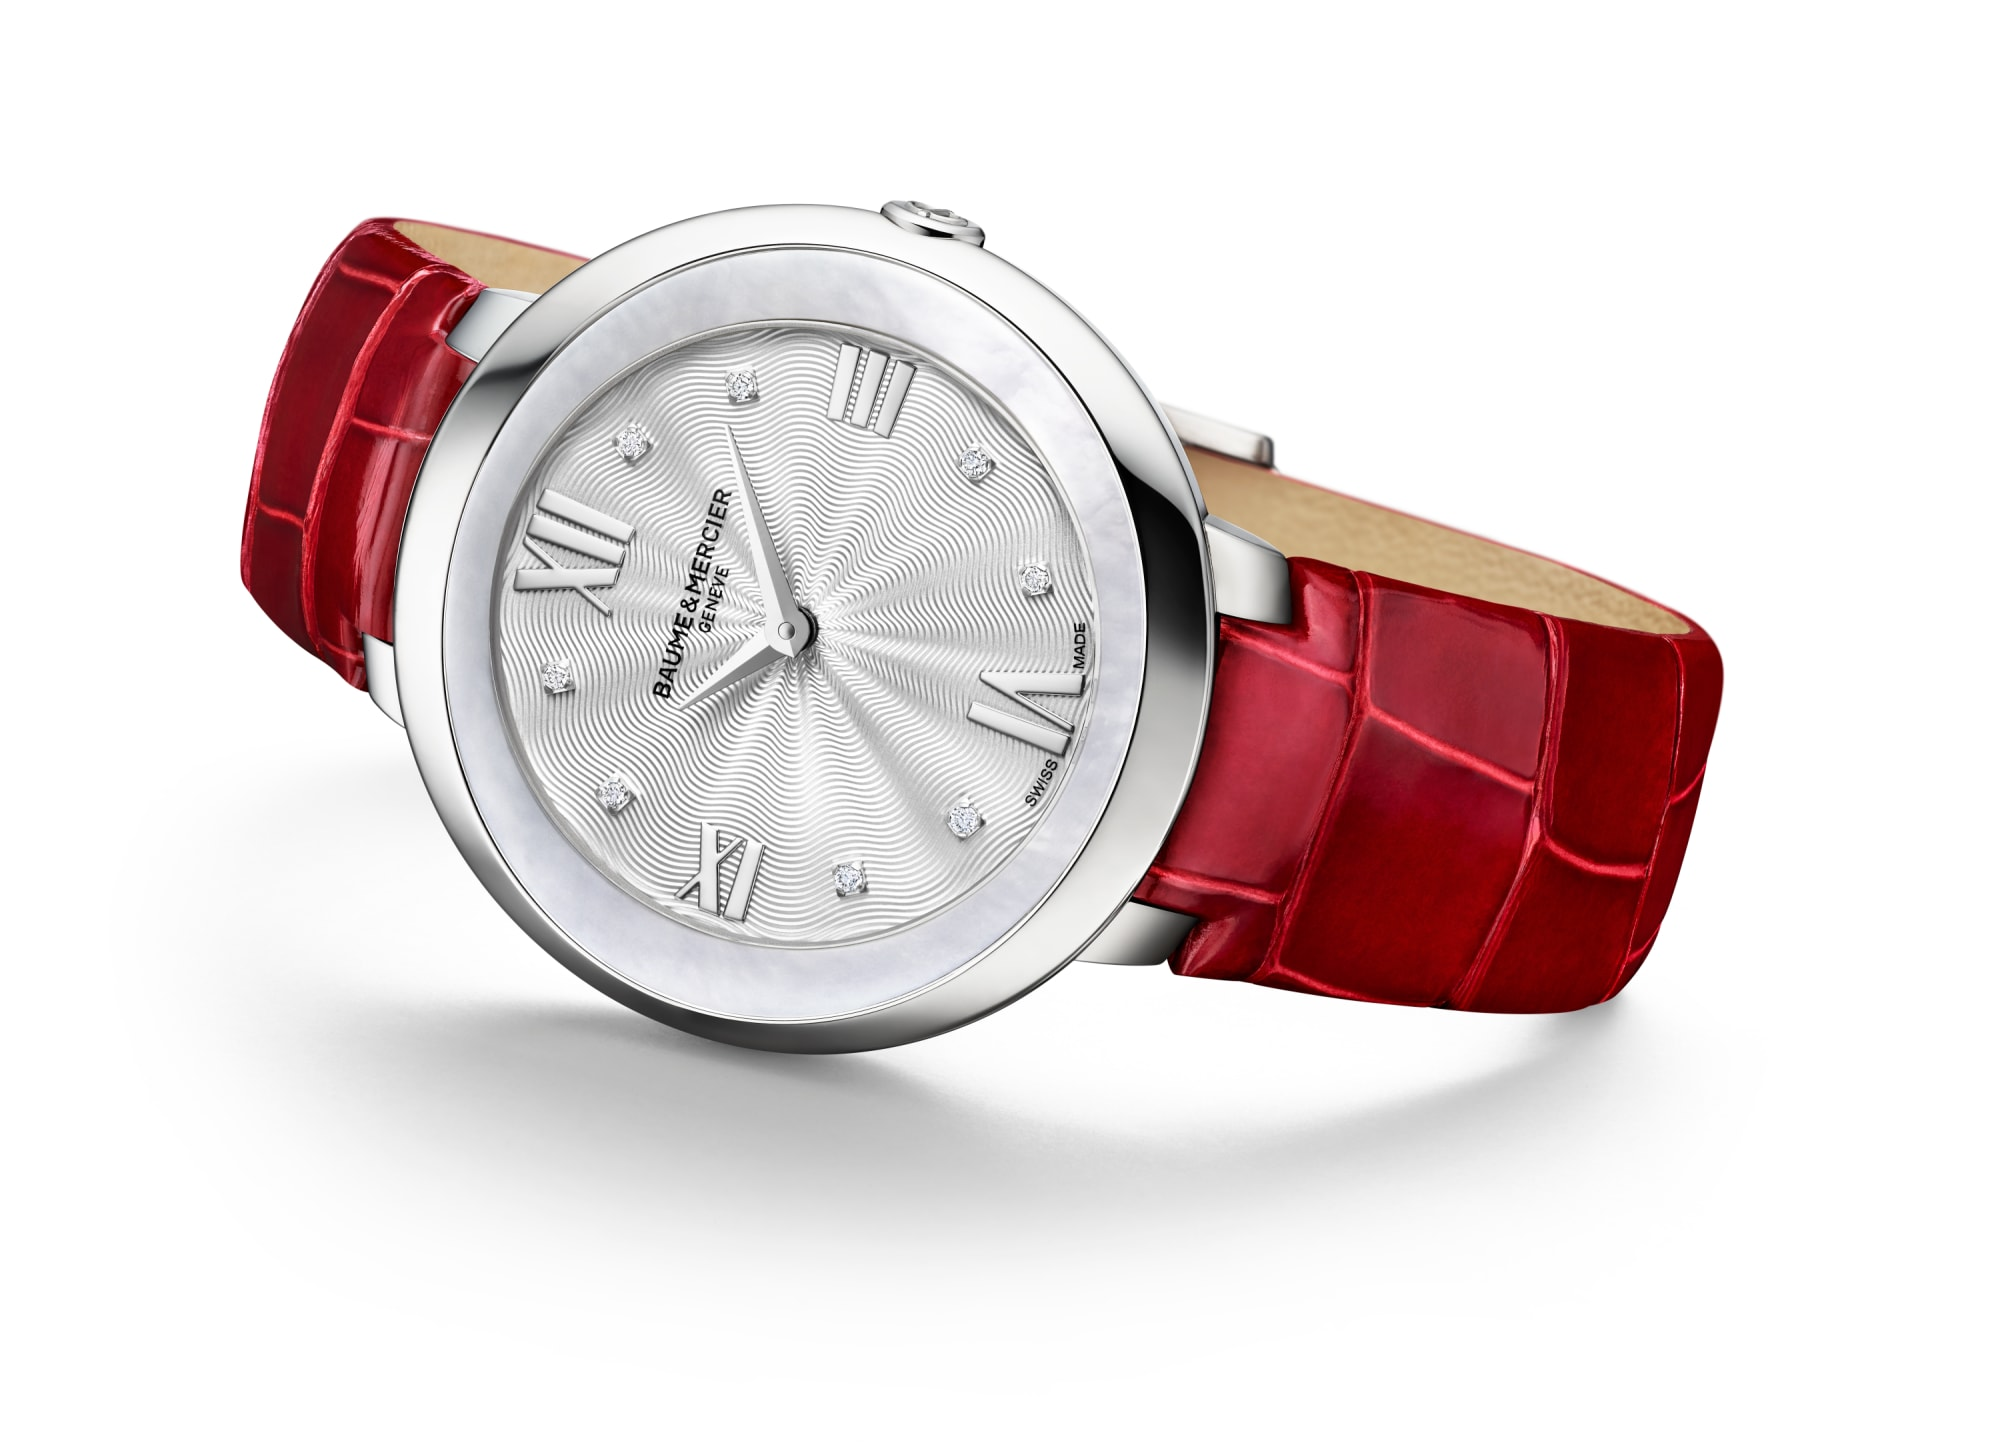 Promesse 10262 Watch for ladies | Check Prices on Baume & Mercier 3|4 -